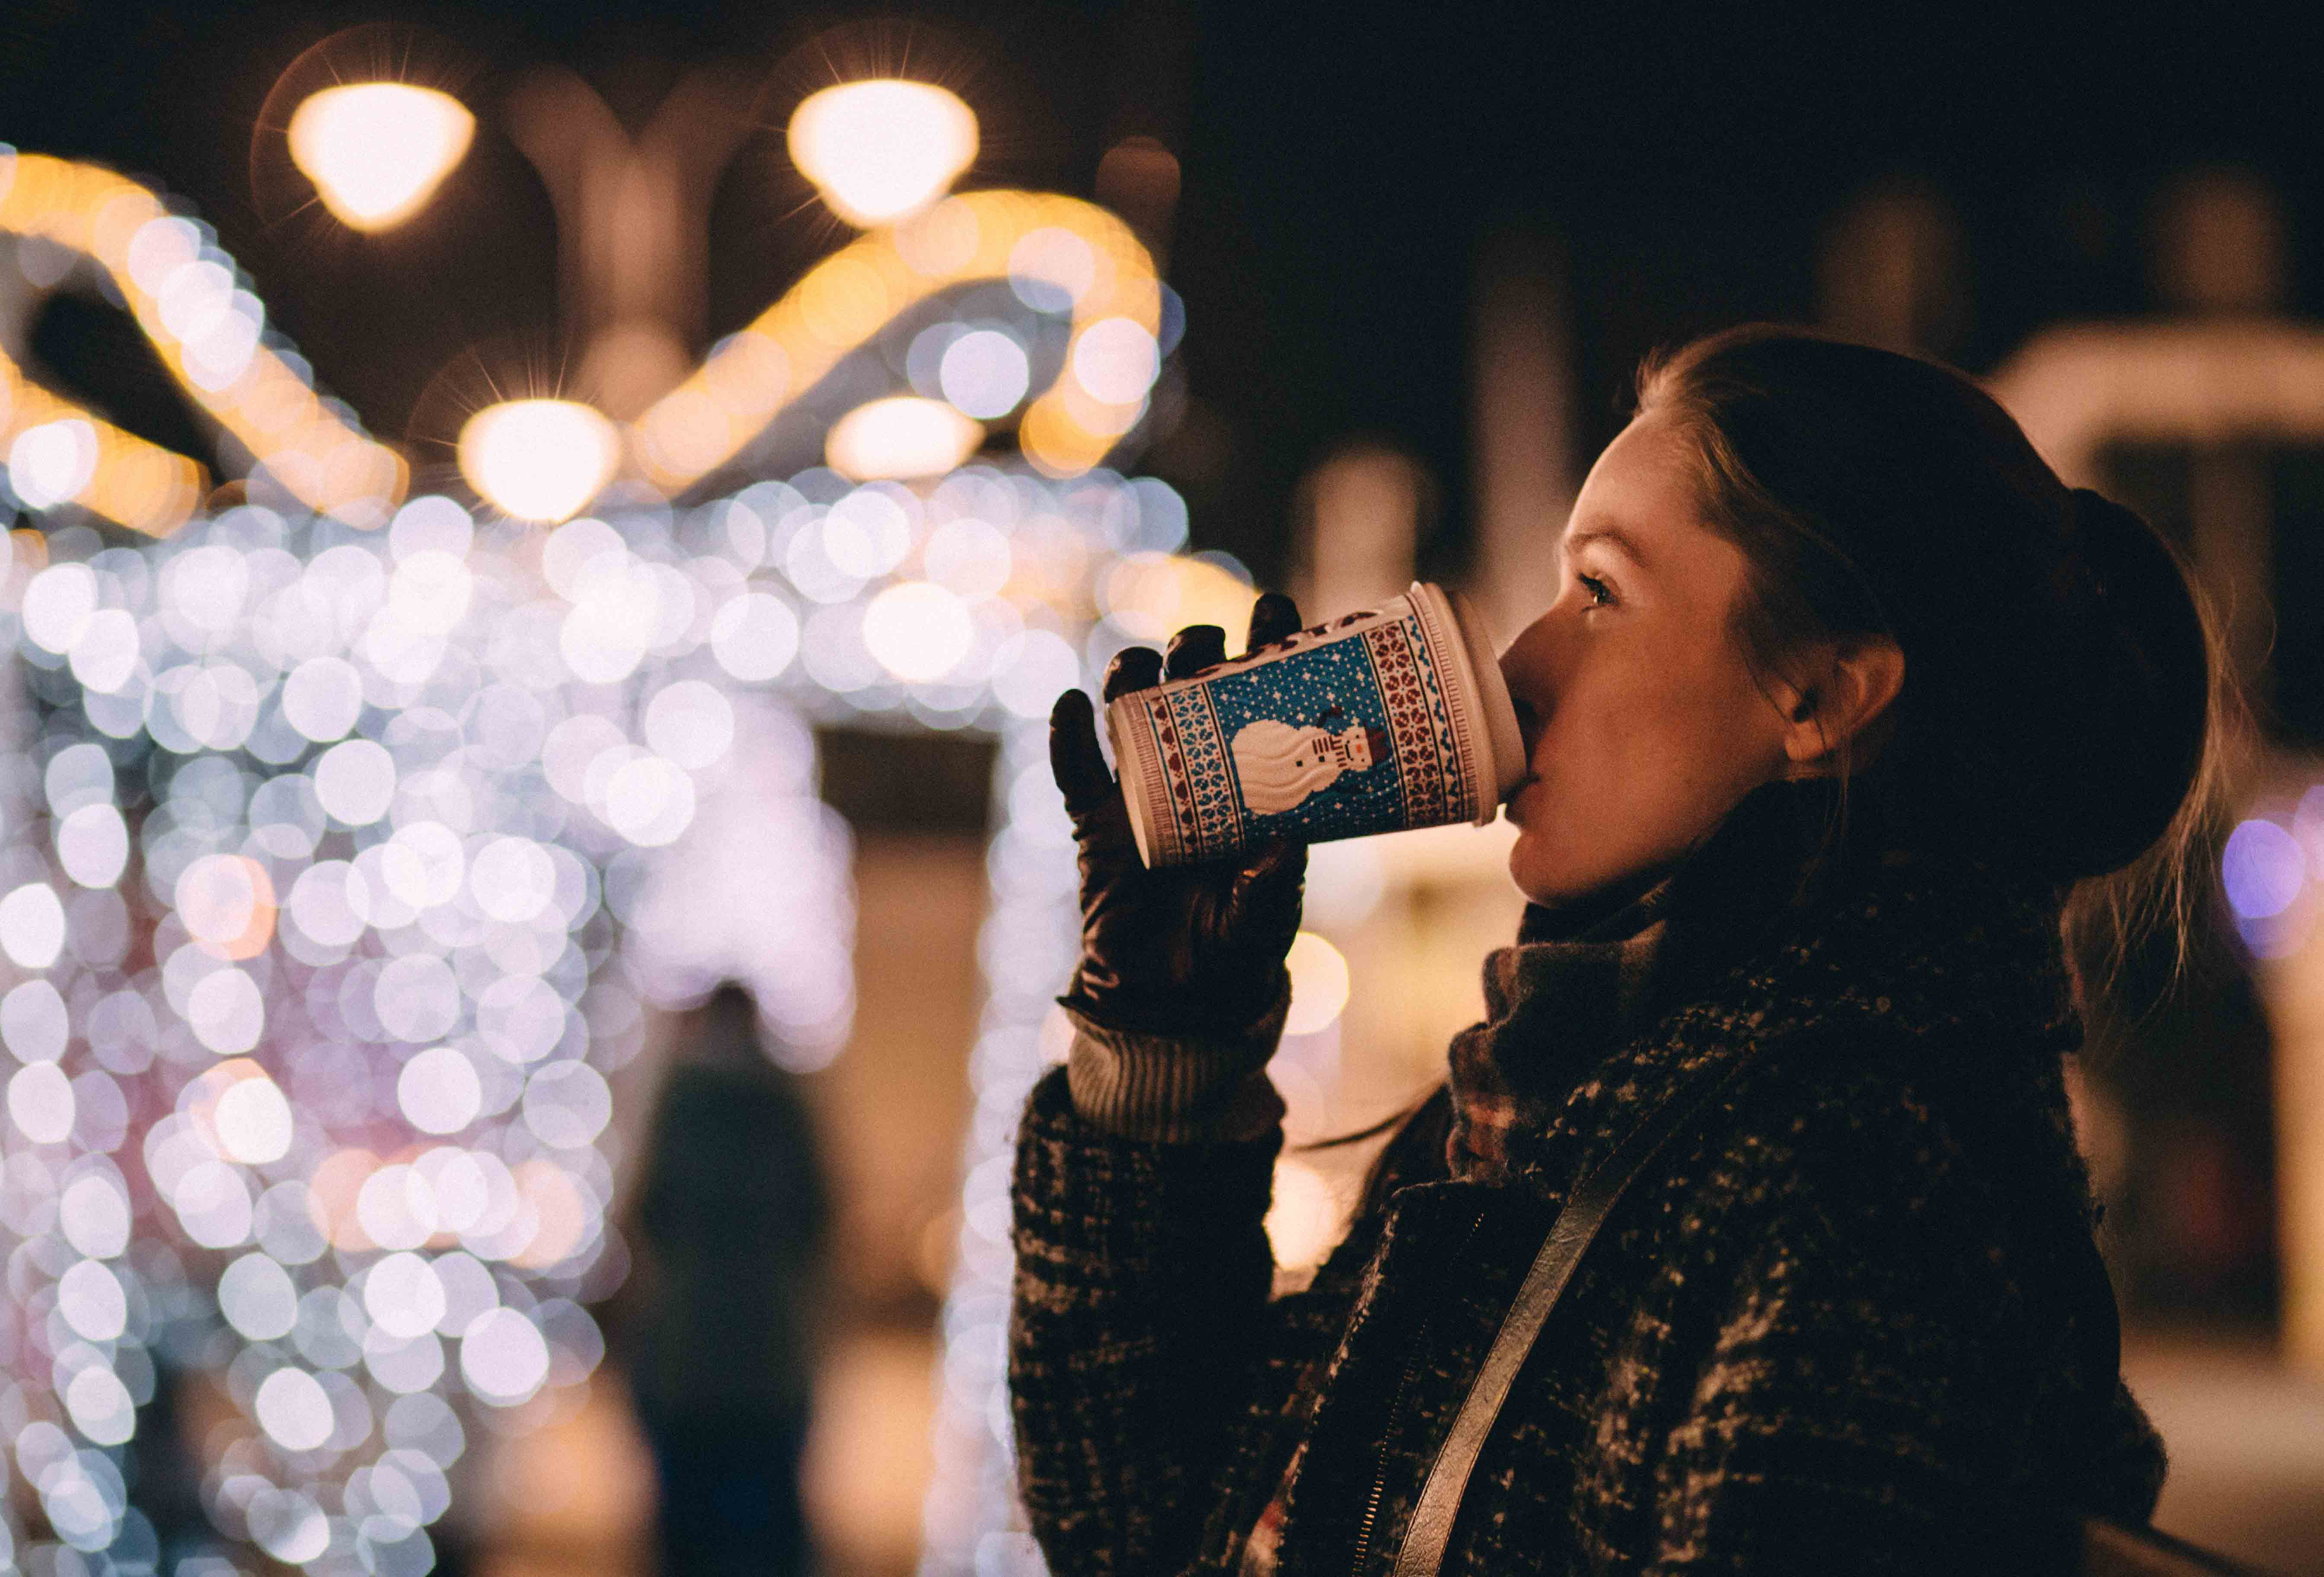 Woman wearing gloves and a scarf drinking a hot drink at a Christmas market with fairy lights in the background